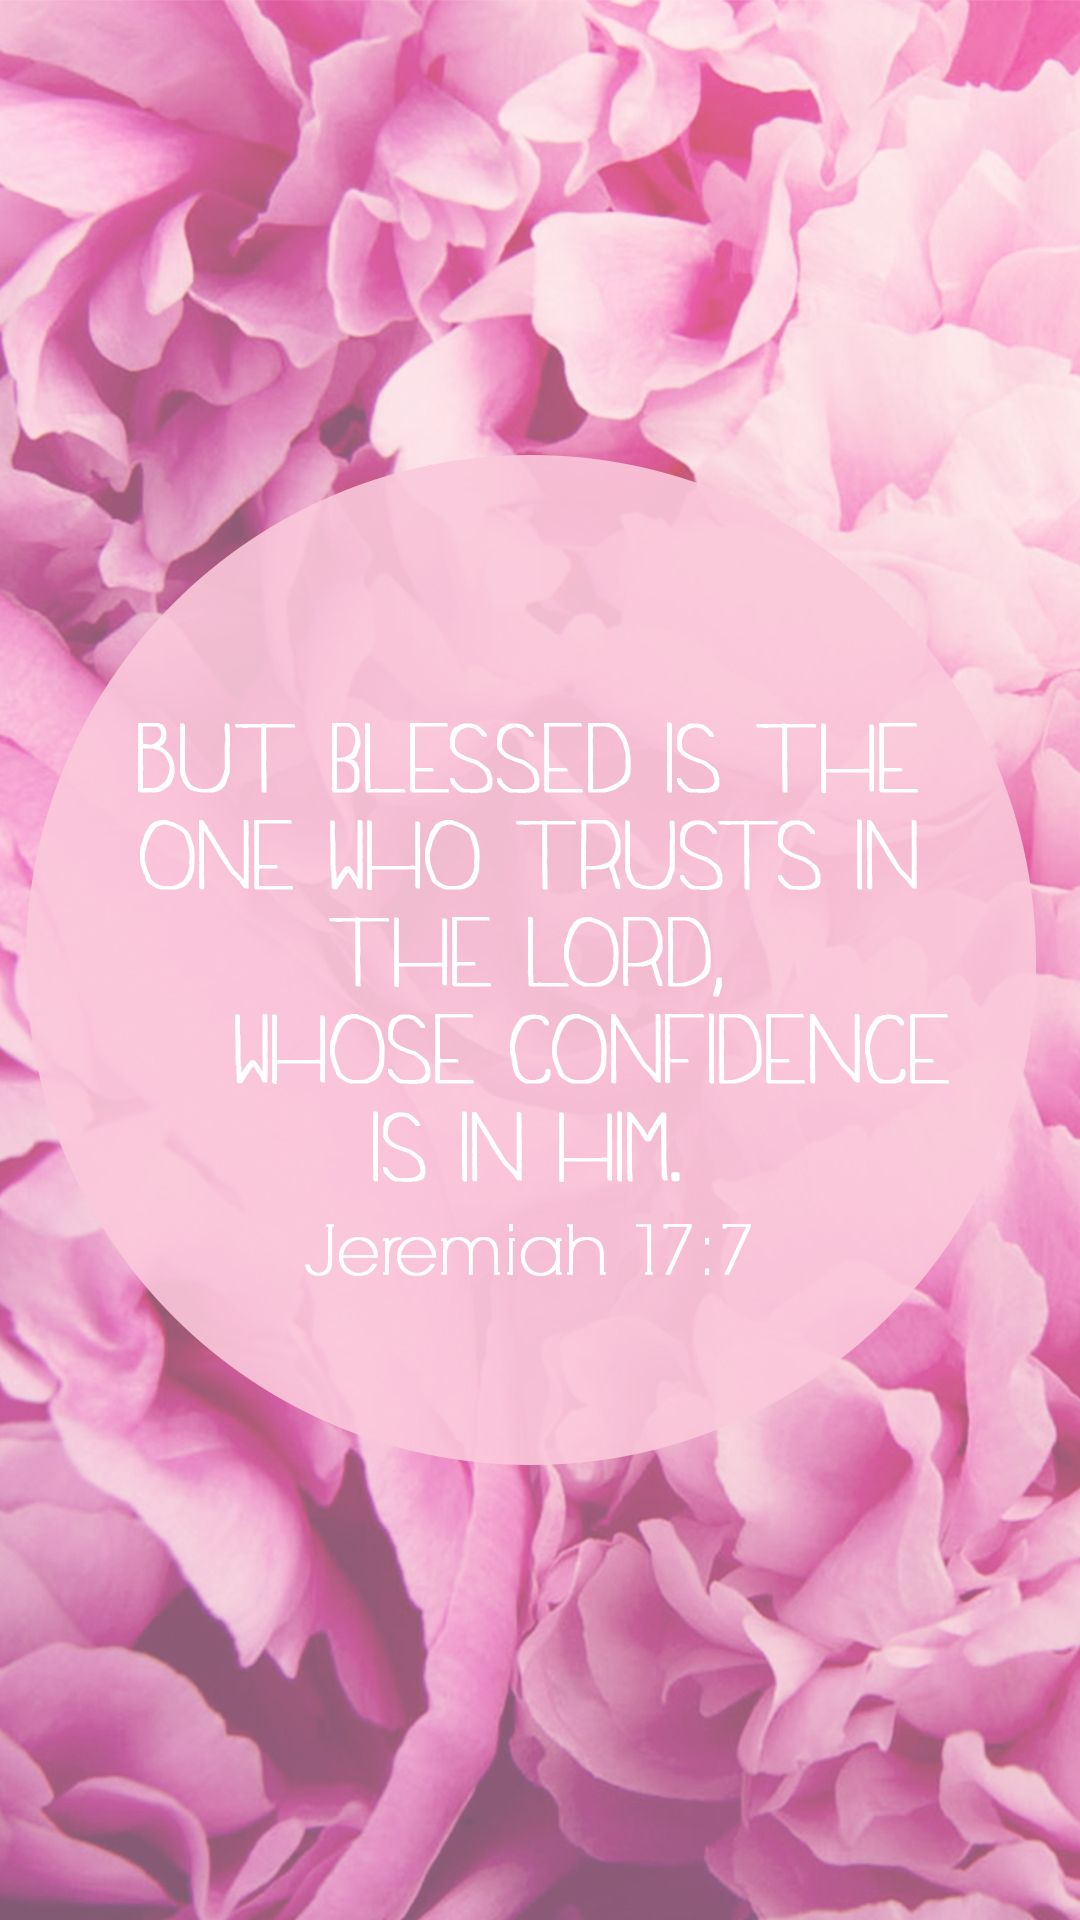 Hp Laptop Hd Quran Quotes Wallpapers But Blessed Is The One Who Trusts In The Lord Whose